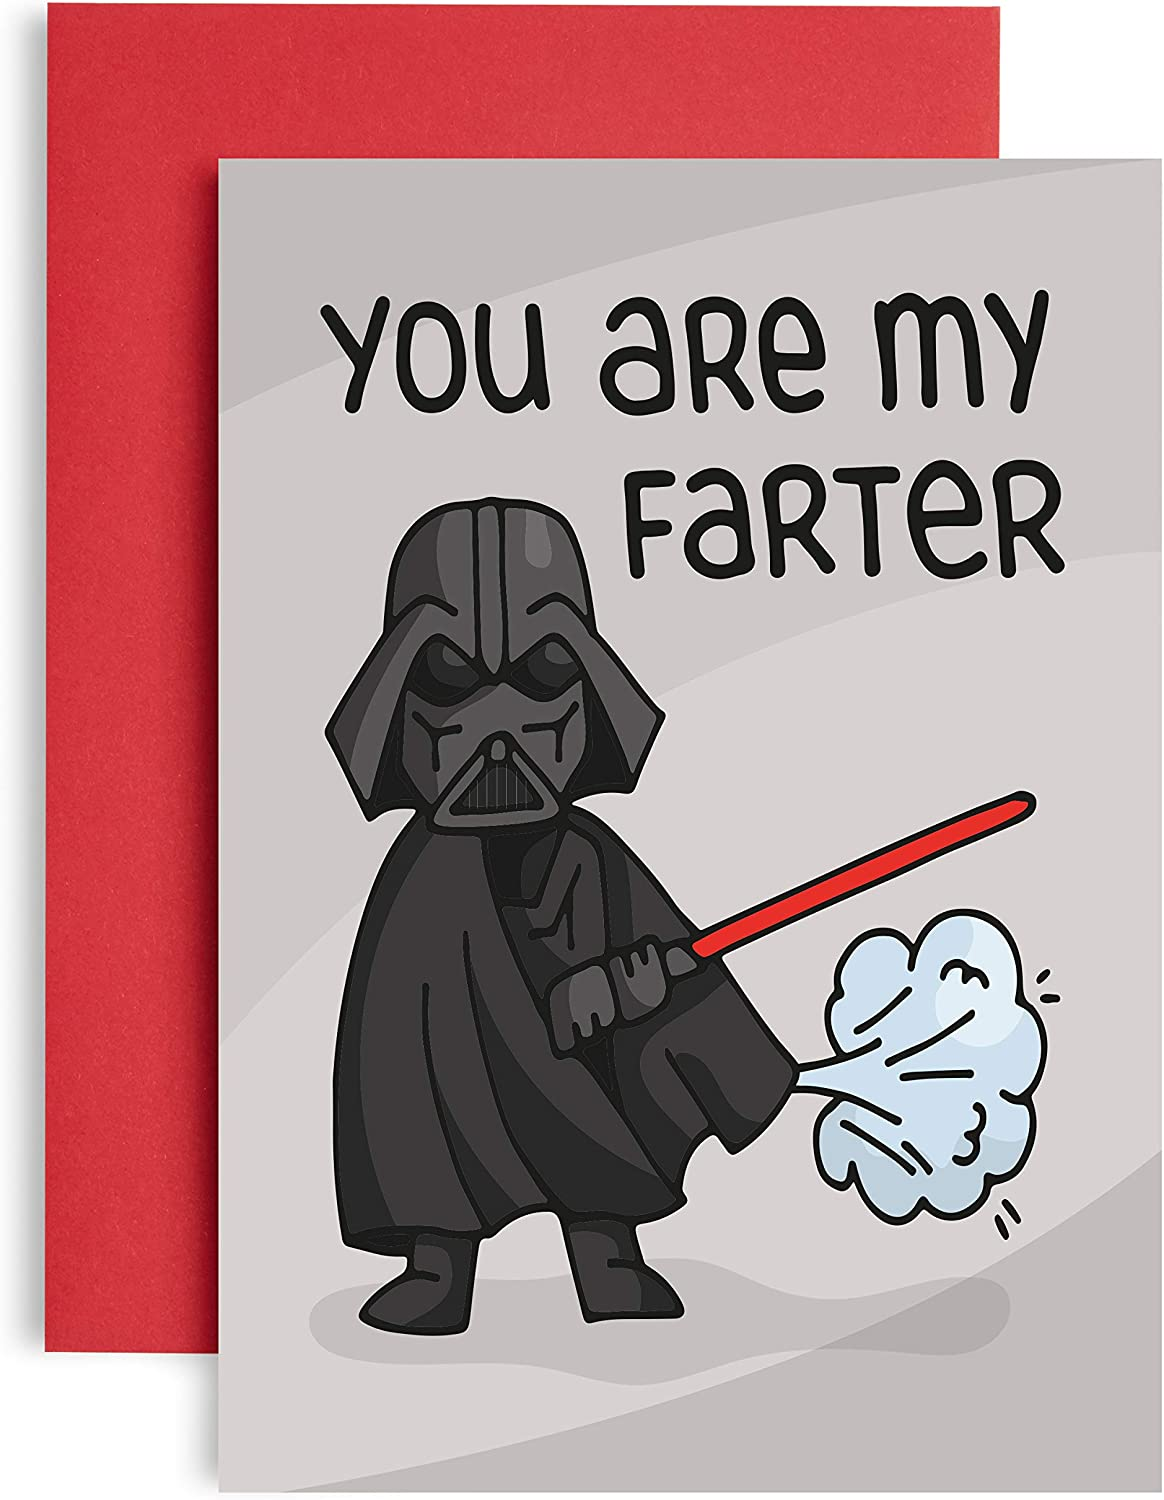 Funny Yoda Best Fathers Day Card You are My FatherFarter A6 Fathers Day Card from Daughter or Son Lockdown Birthday Cards for him Star Wars Birthday Cards Quarantine Fathers Day Card